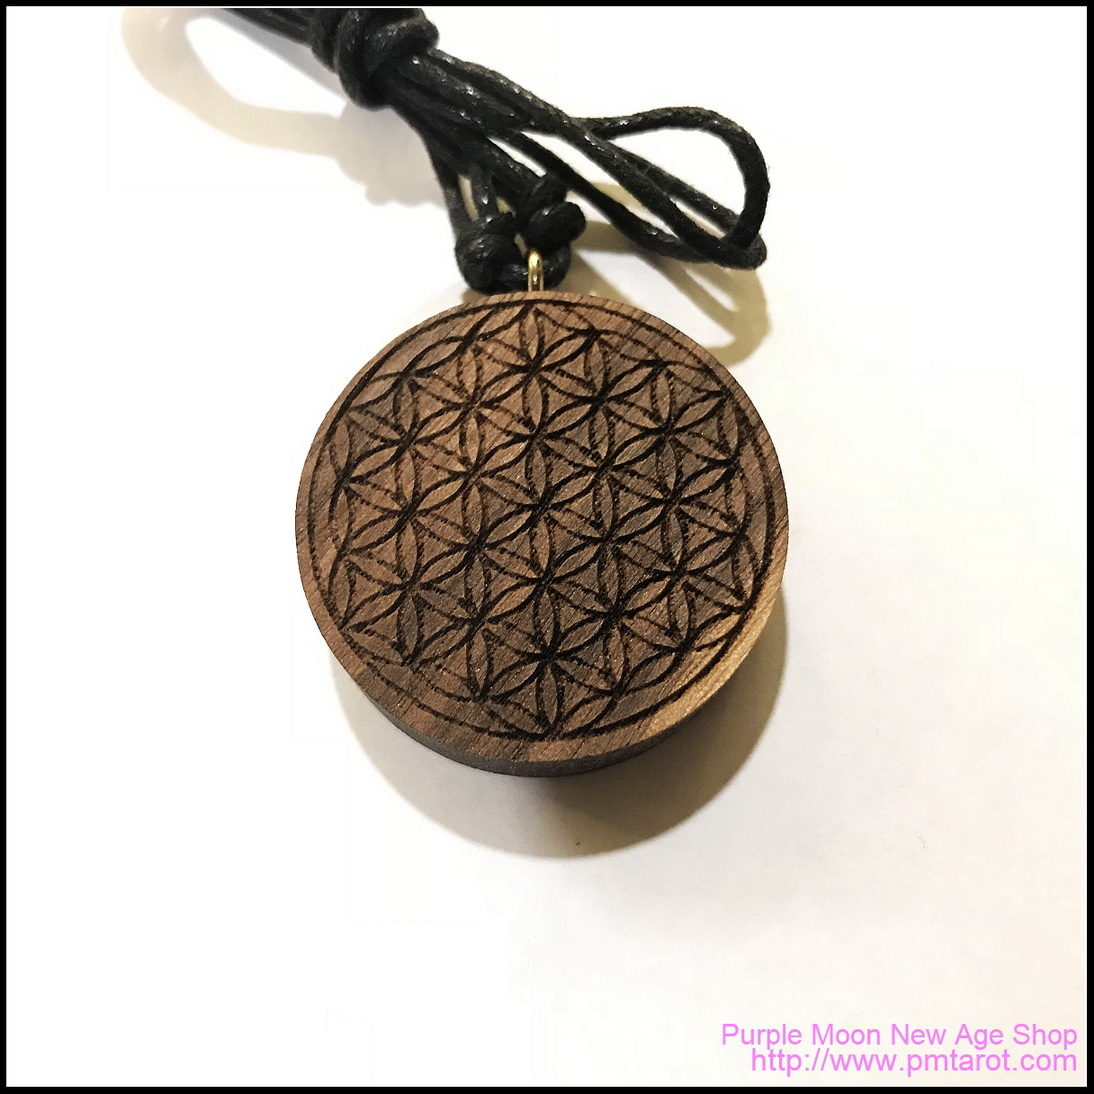 Handmade Orgone Pendant in Walnut Wood